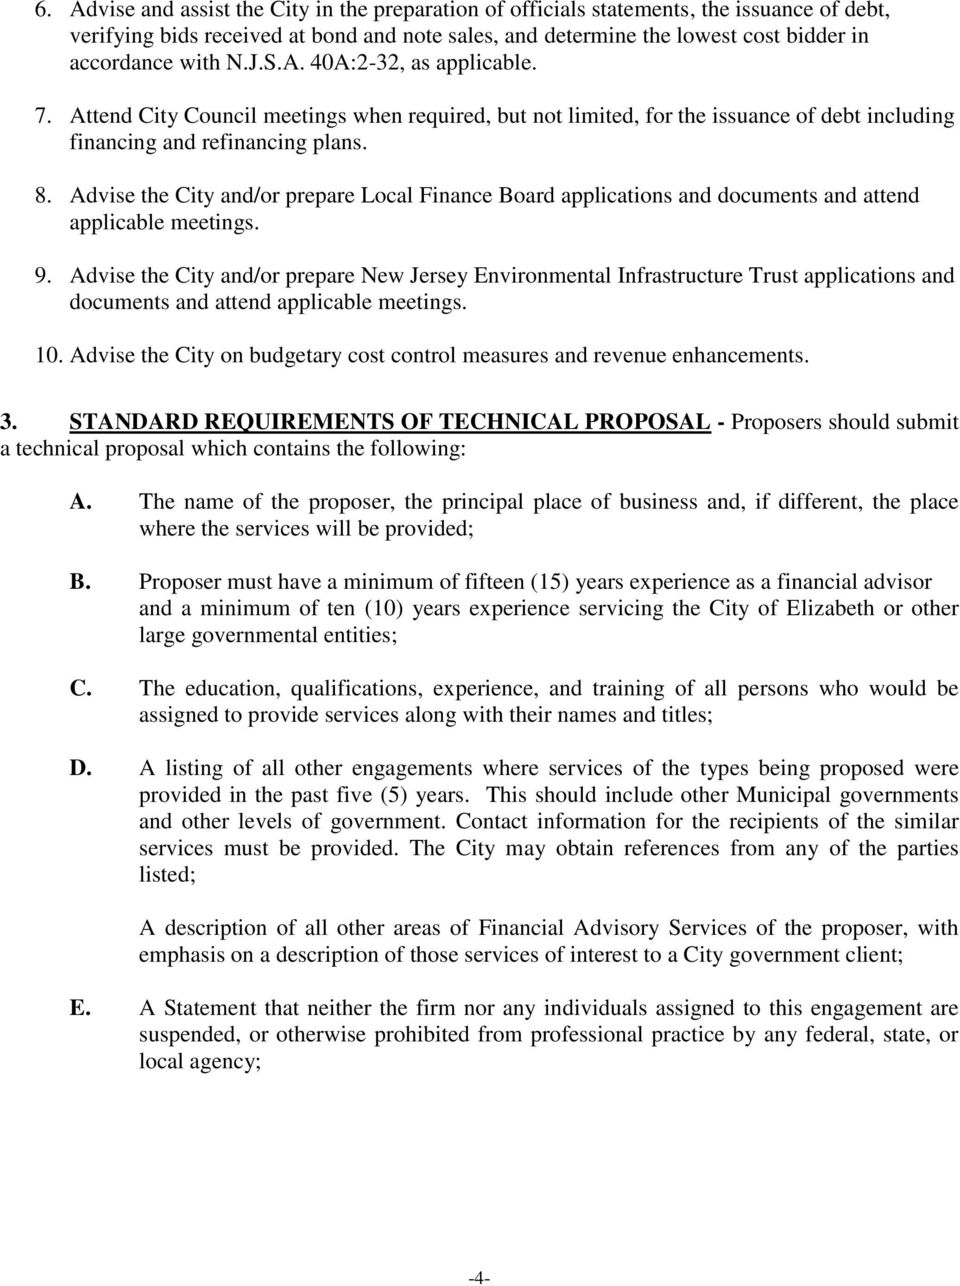 Advise the City and/or prepare Local Finance Board applications and documents and attend applicable meetings. 9.